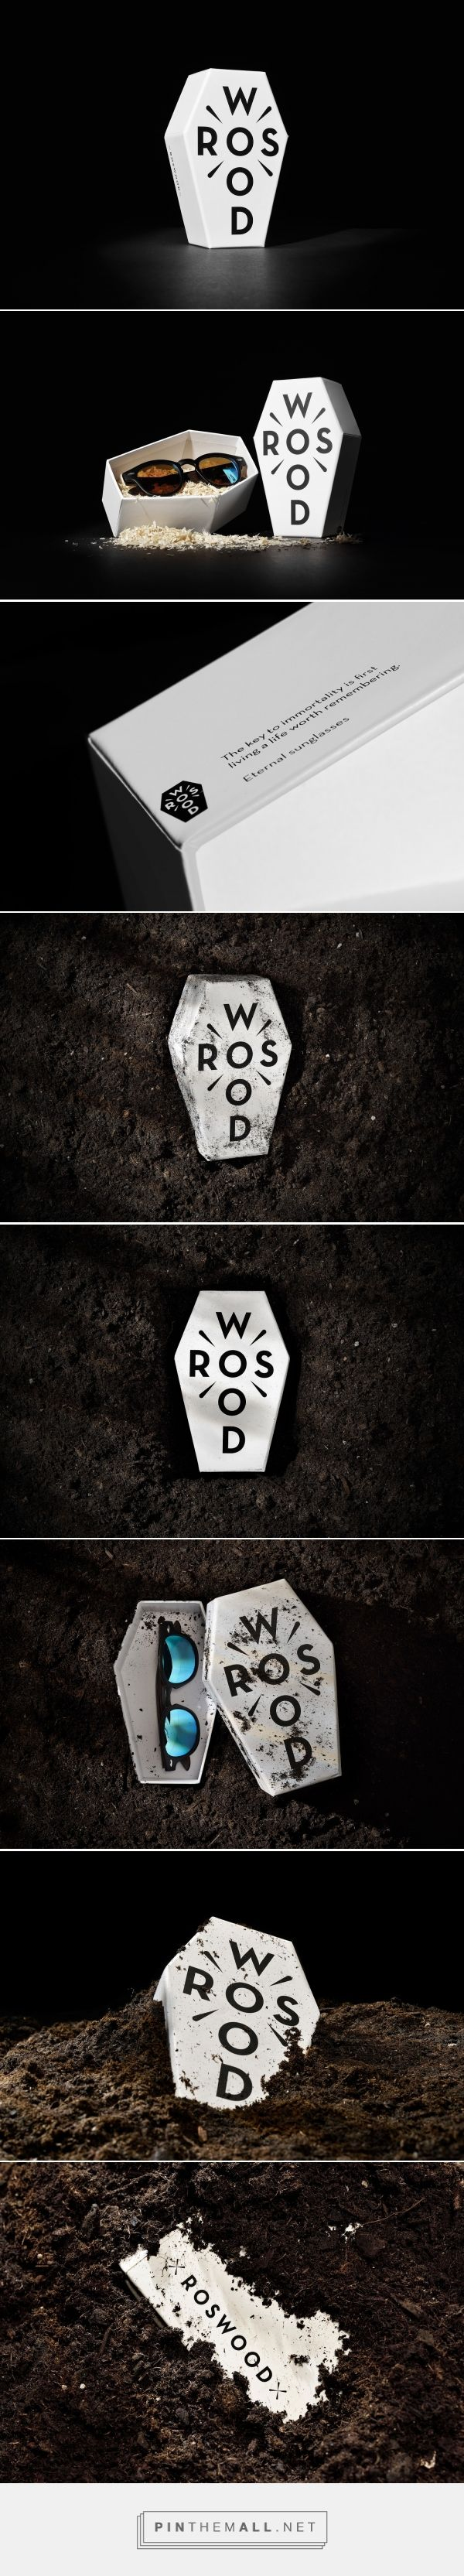 Roswood #sunglass #packaging #design by F33 - http://www.packagingoftheworld.com/2018/02/roswood.html